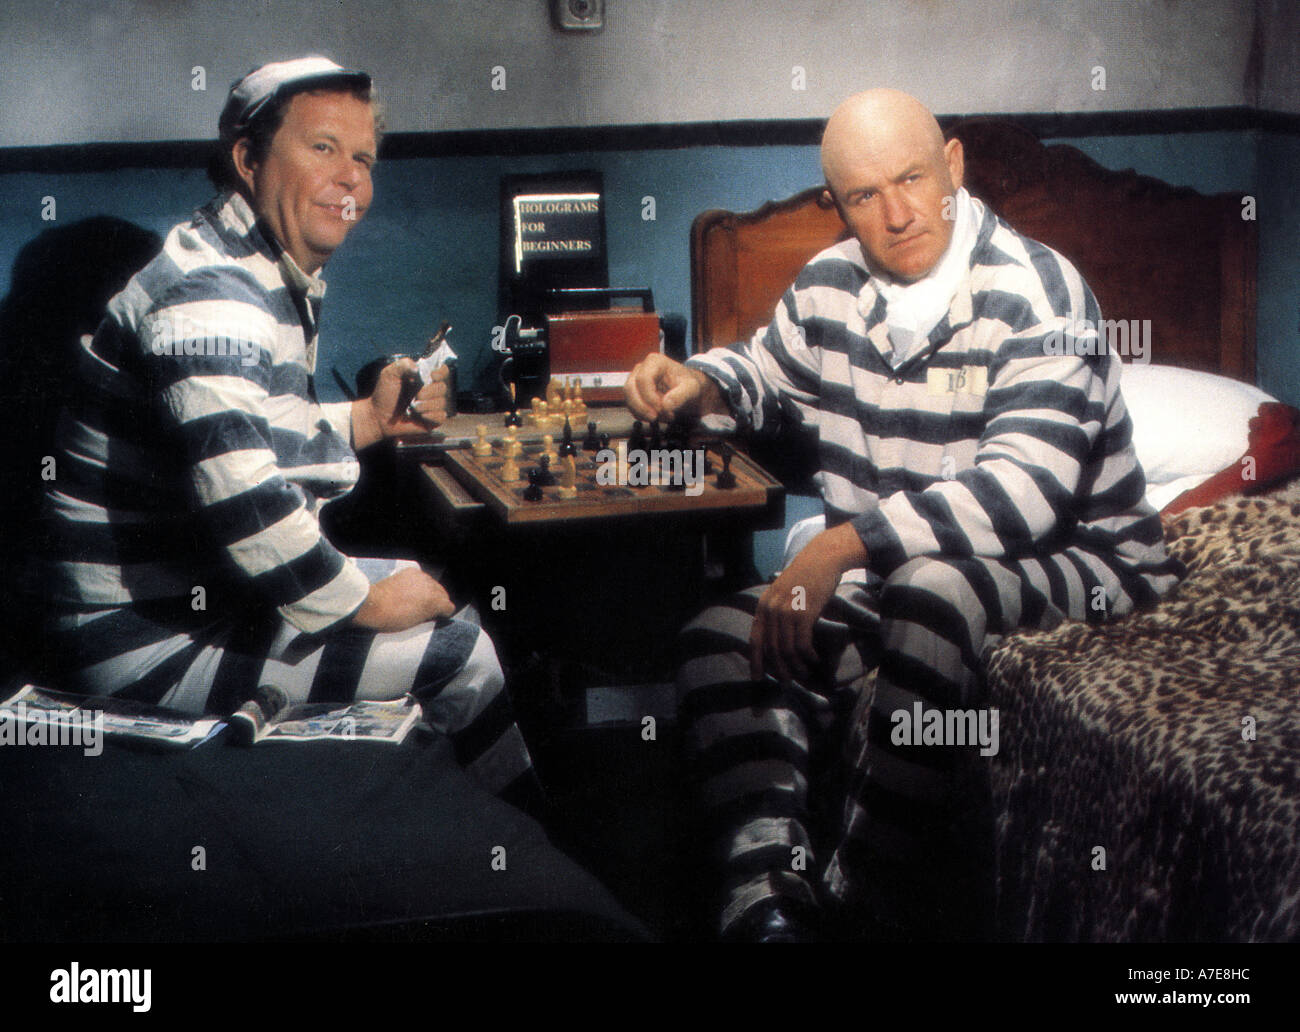 SUPERMAN II Gne Hackman at right with Ned Beatty in the 1980 Warner film - Stock Image